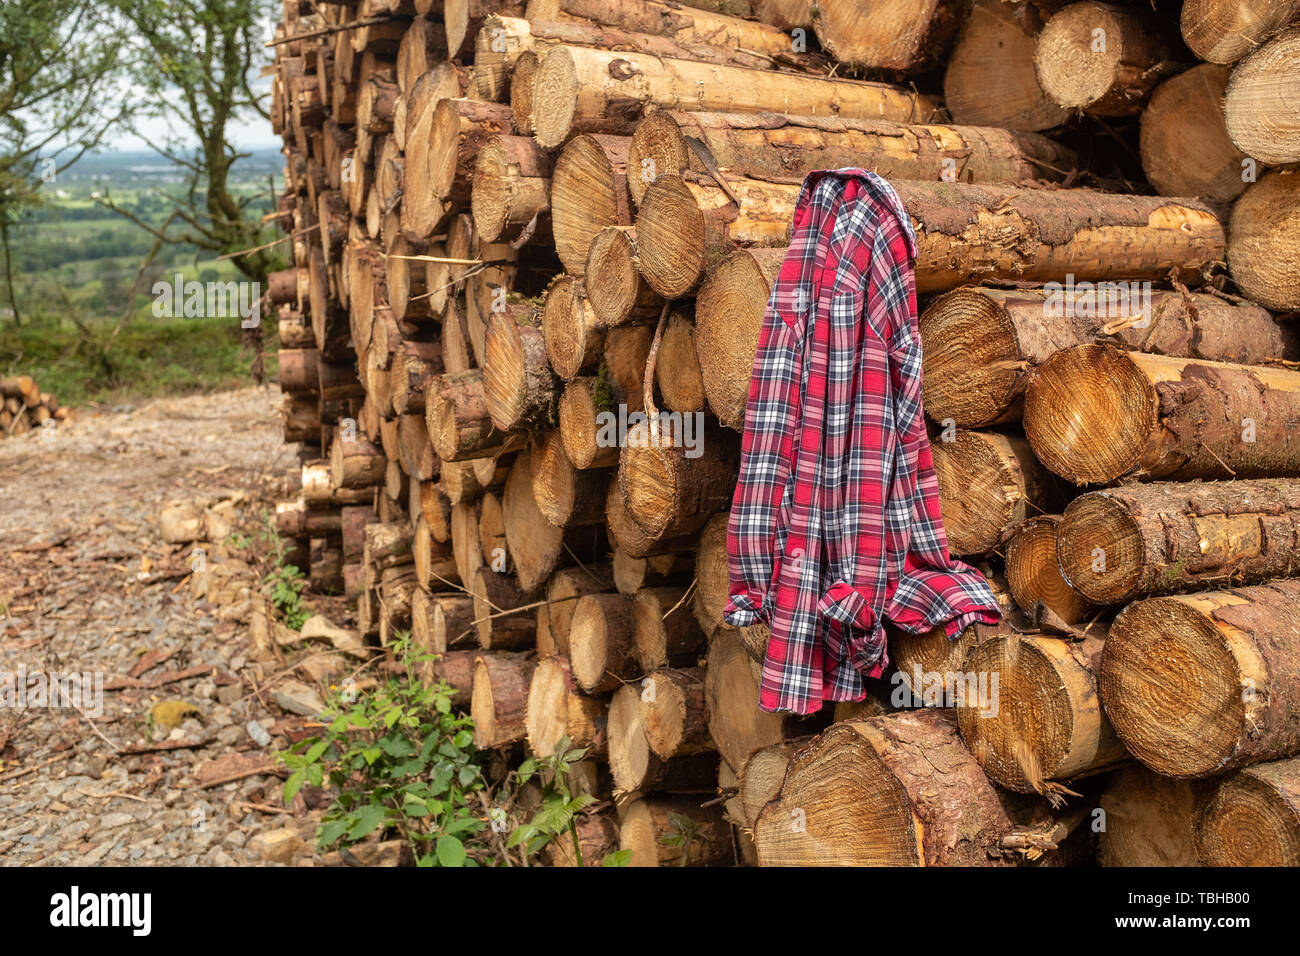 A plaid shirt hooked onto a pile of freshly cut trees striped of branches and prepared for the saw mill part of the logging industry in Ireland, nobod - Stock Image